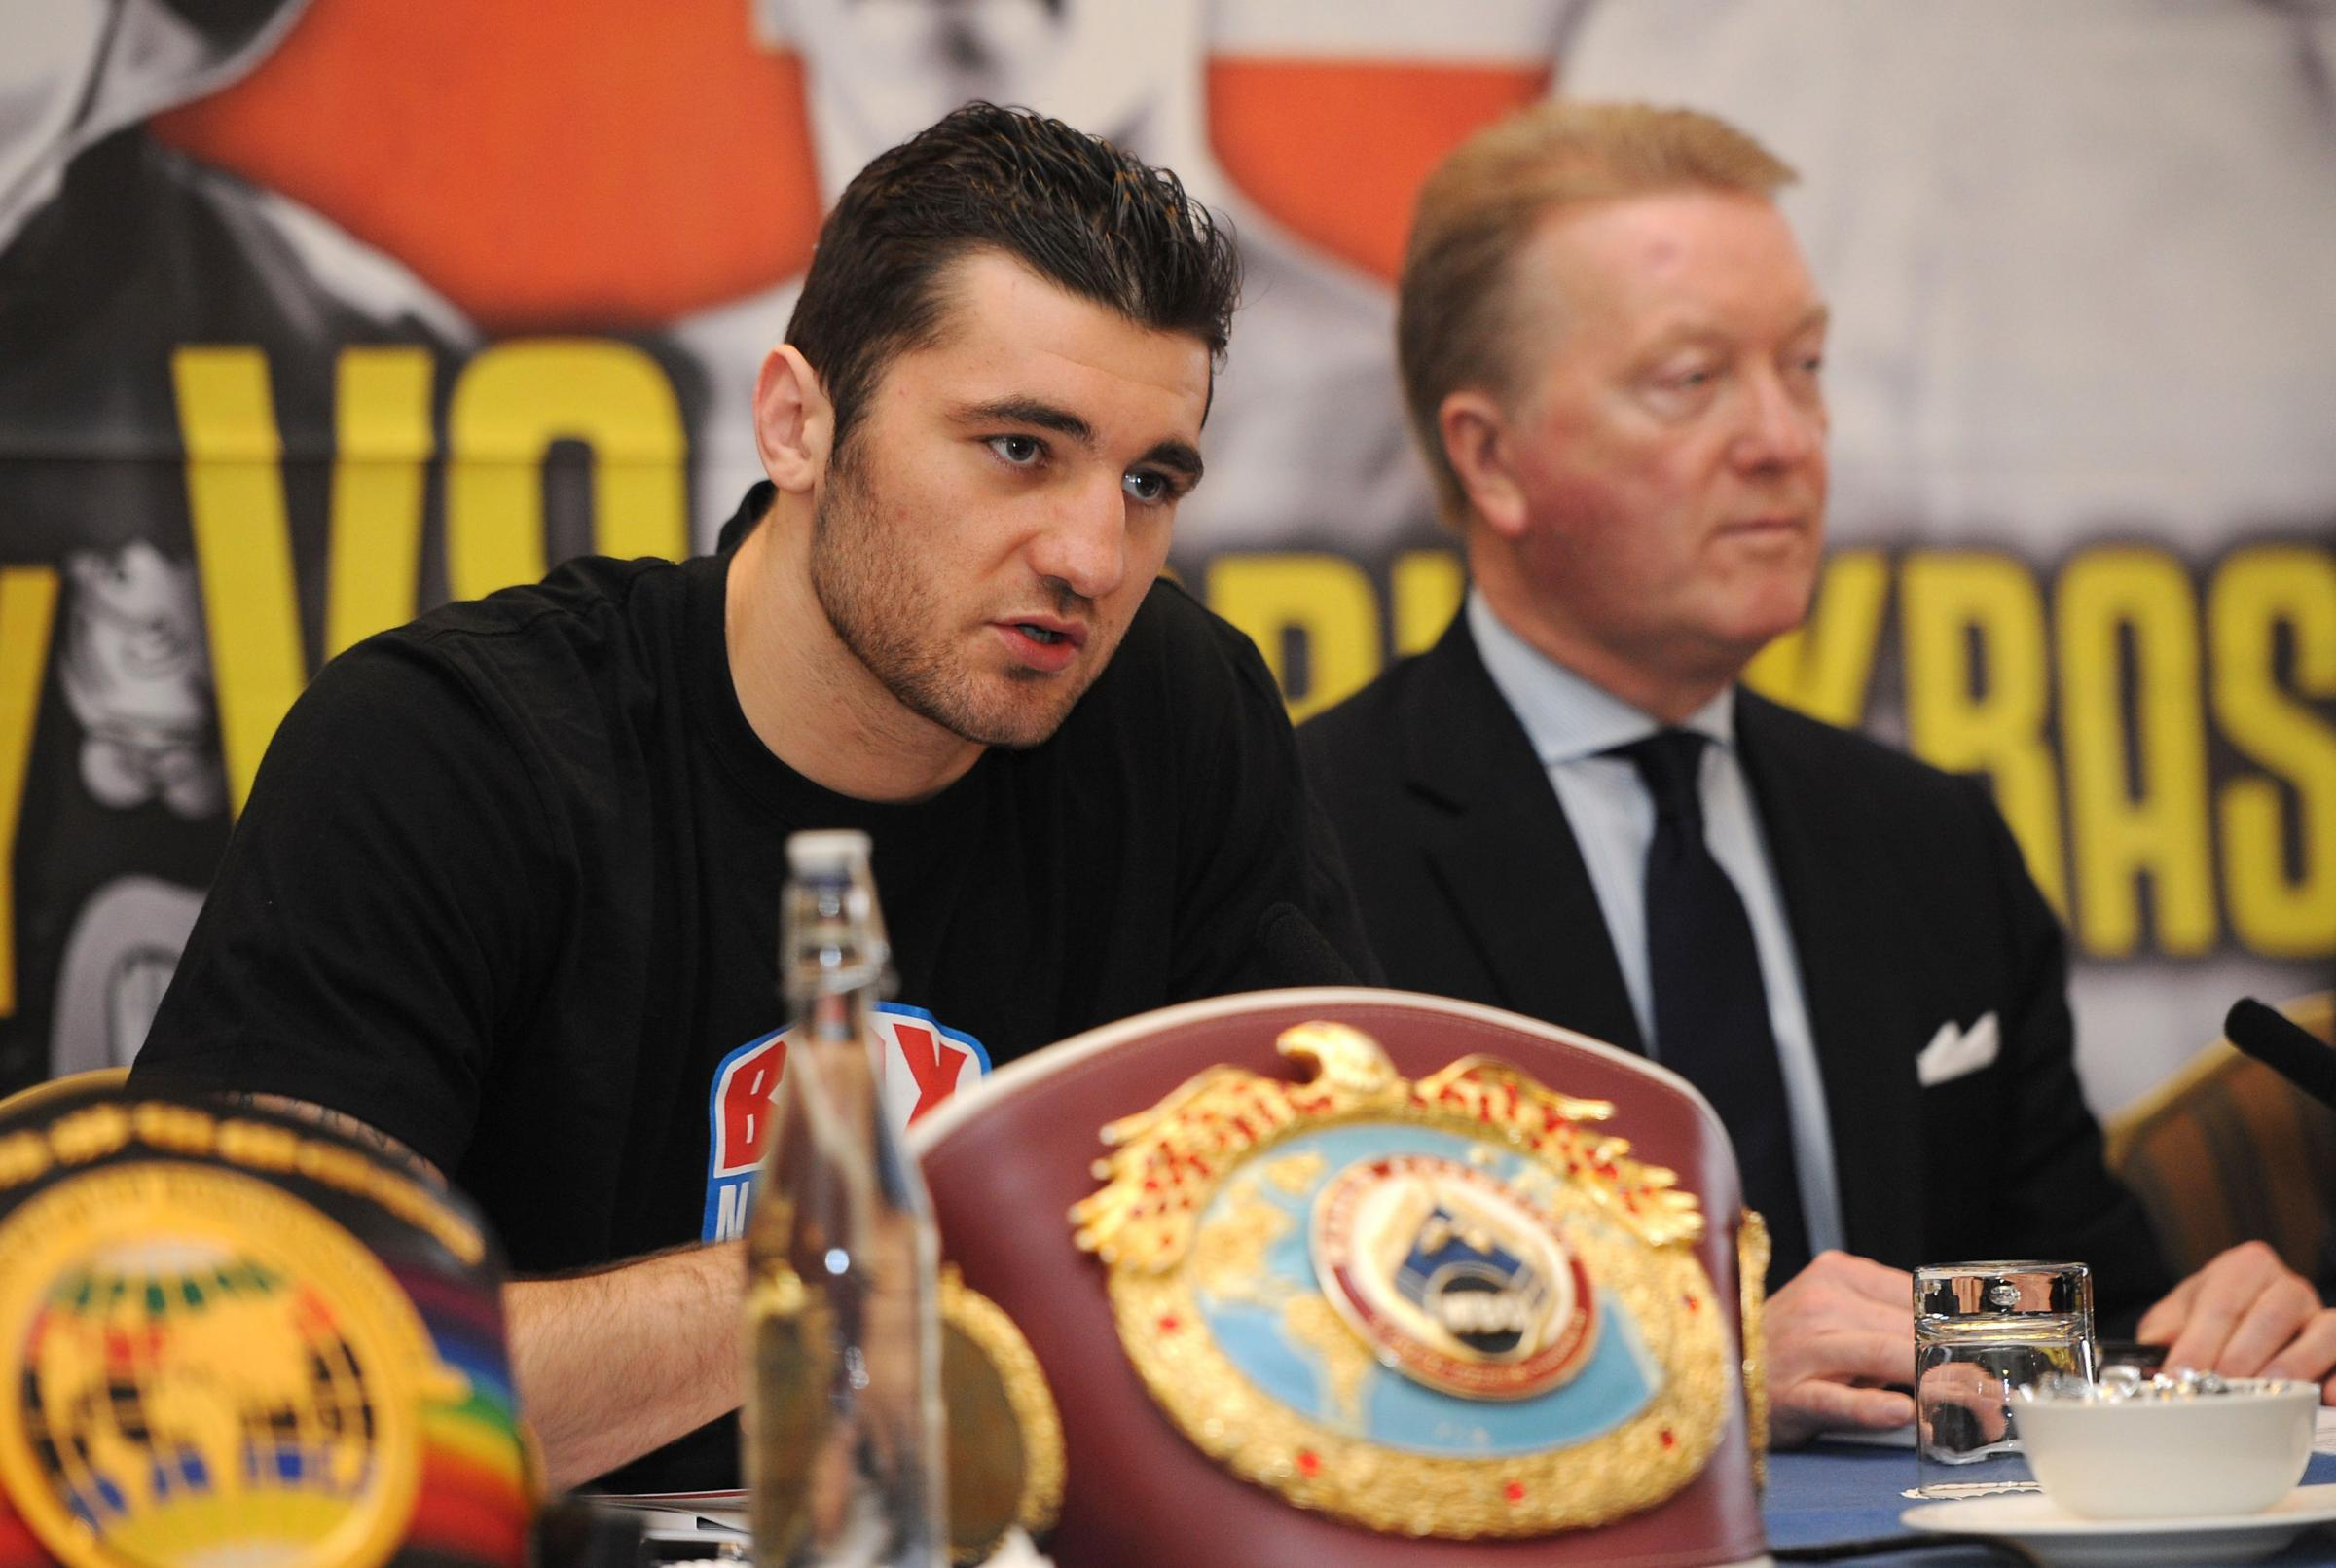 CONFUSION: Promoter Frank Warren, right, says Nathan Cleverly will fight on March 1. Cleverly is not so certain